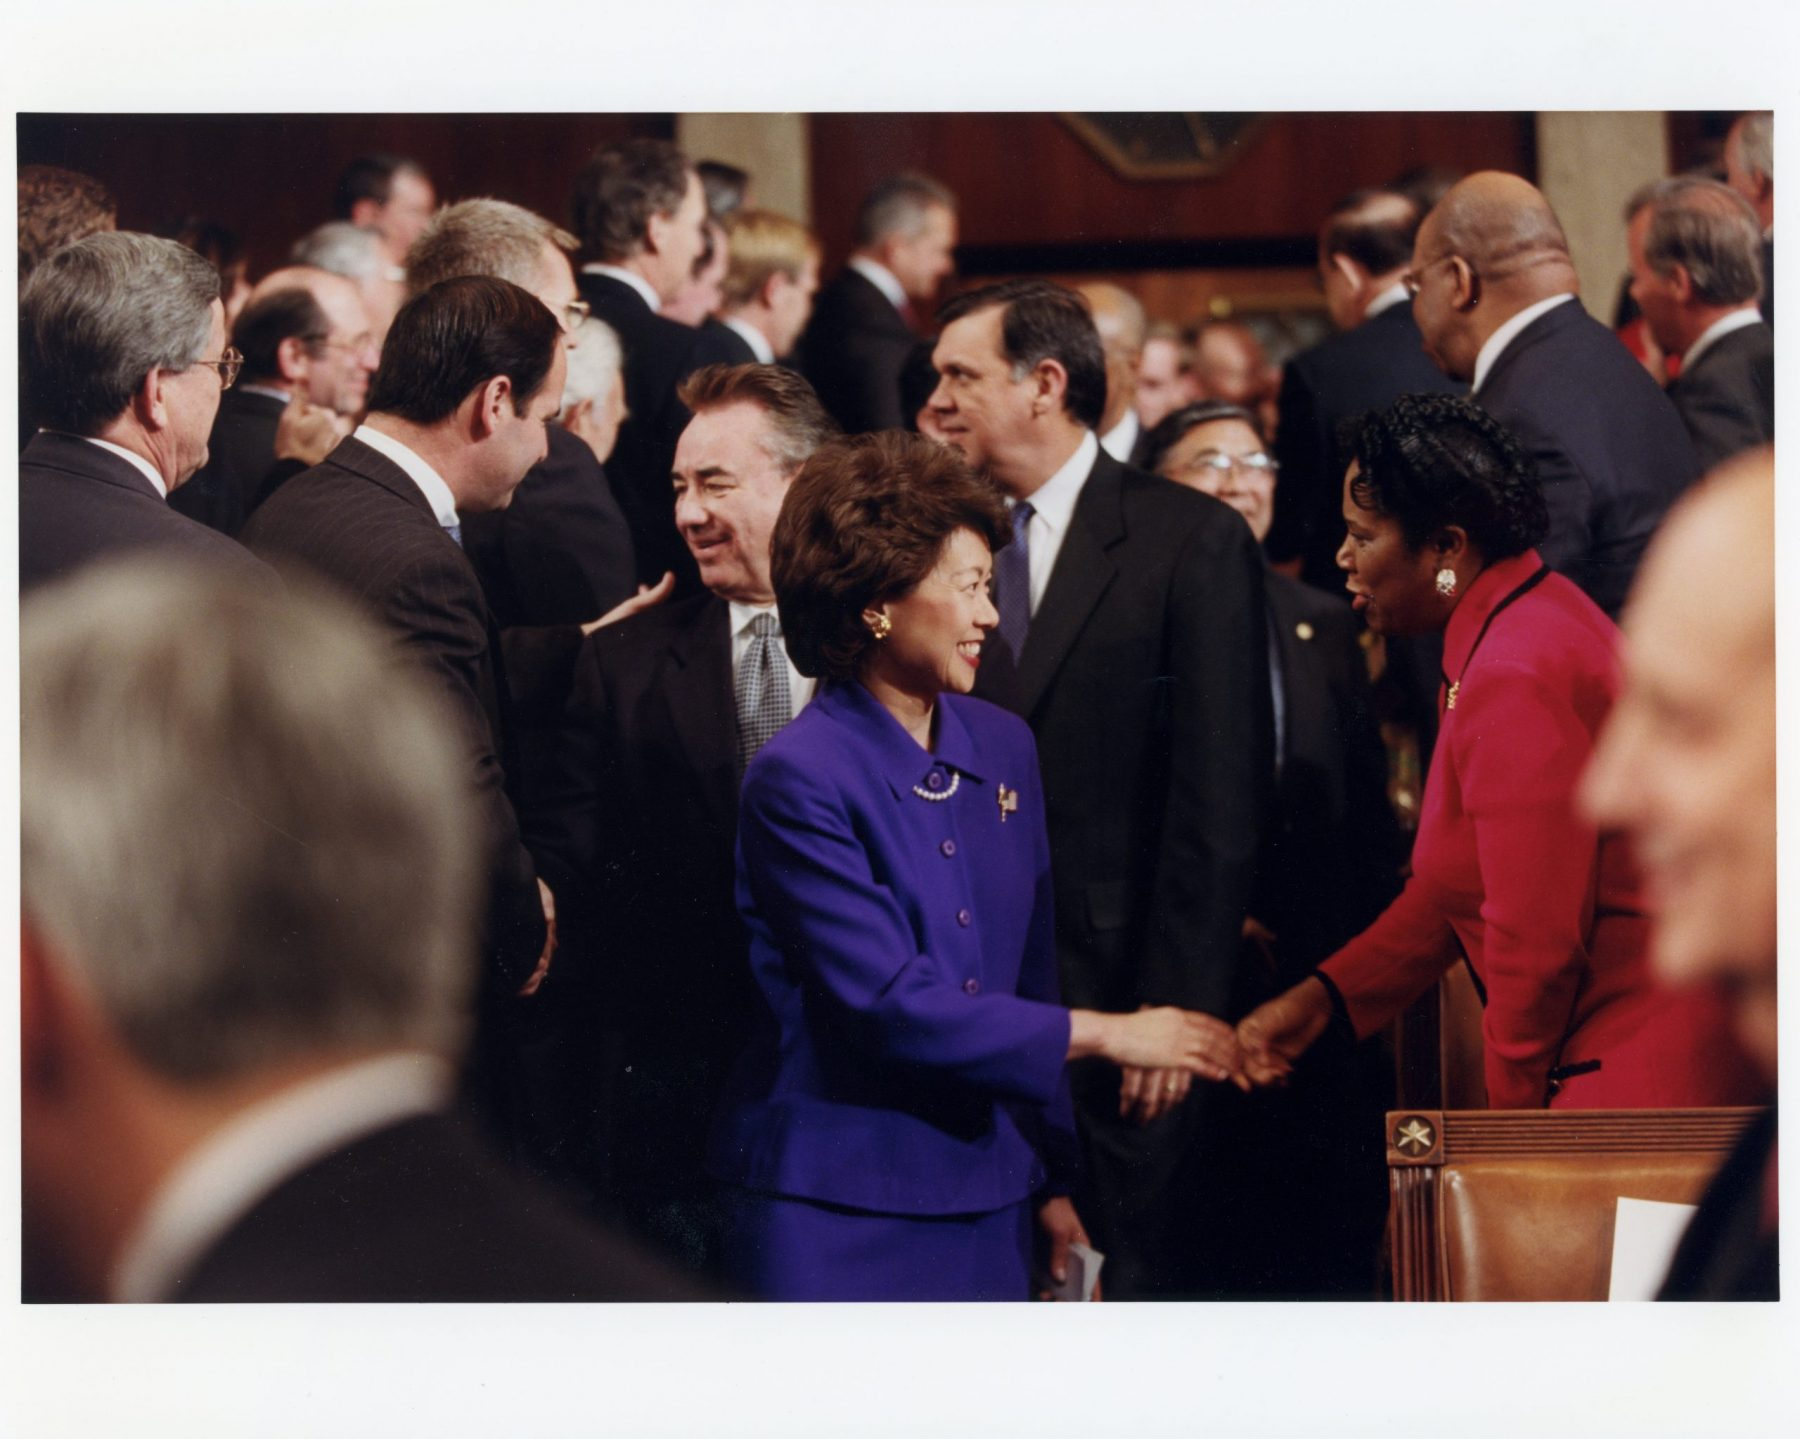 Secretary of Labor Elaine Chao entering House Chambers with the cabinet for the State of the Union Address.